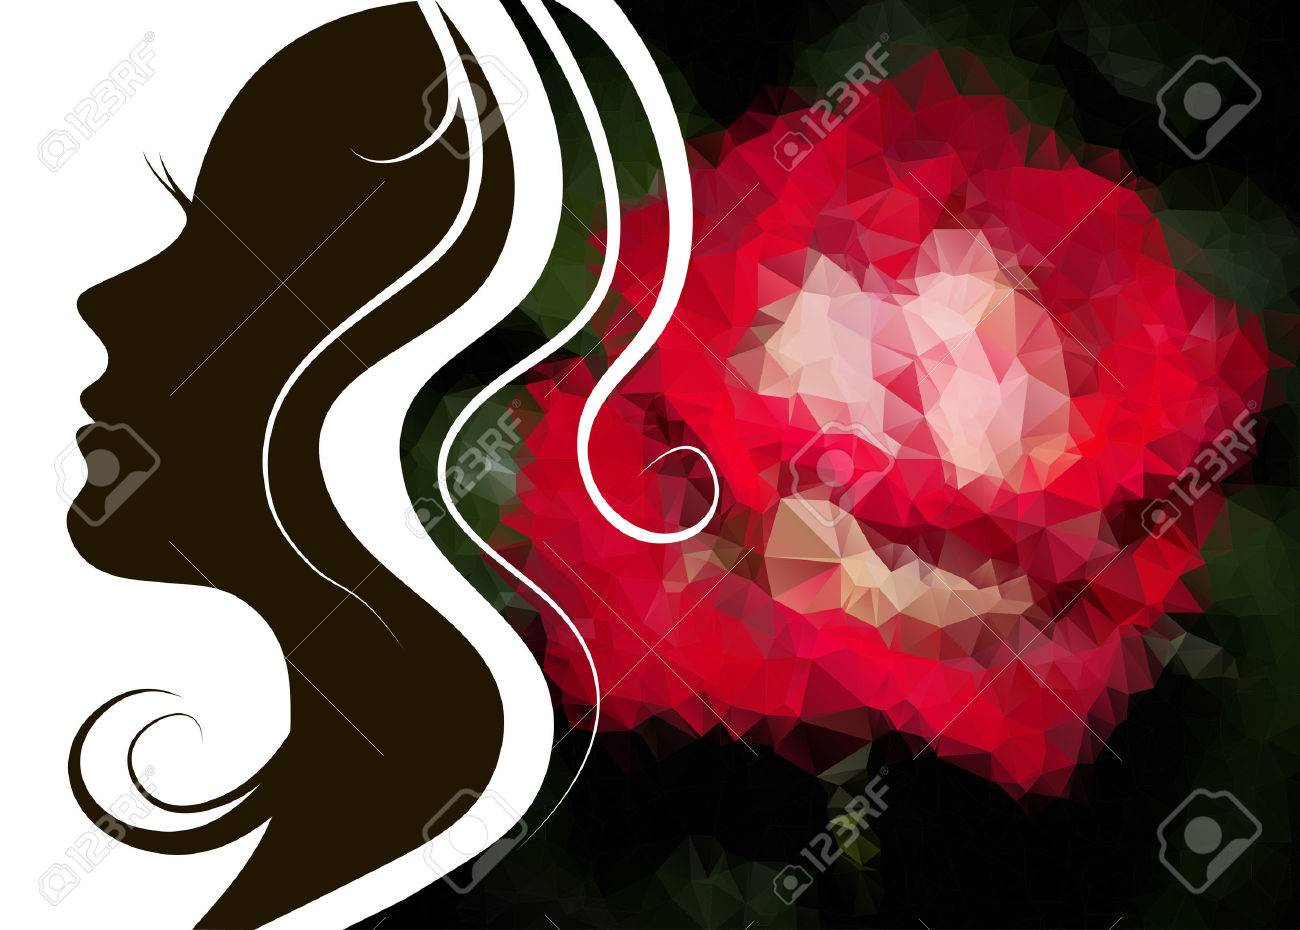 Woman silhouette plus abstract flower background - 44410332